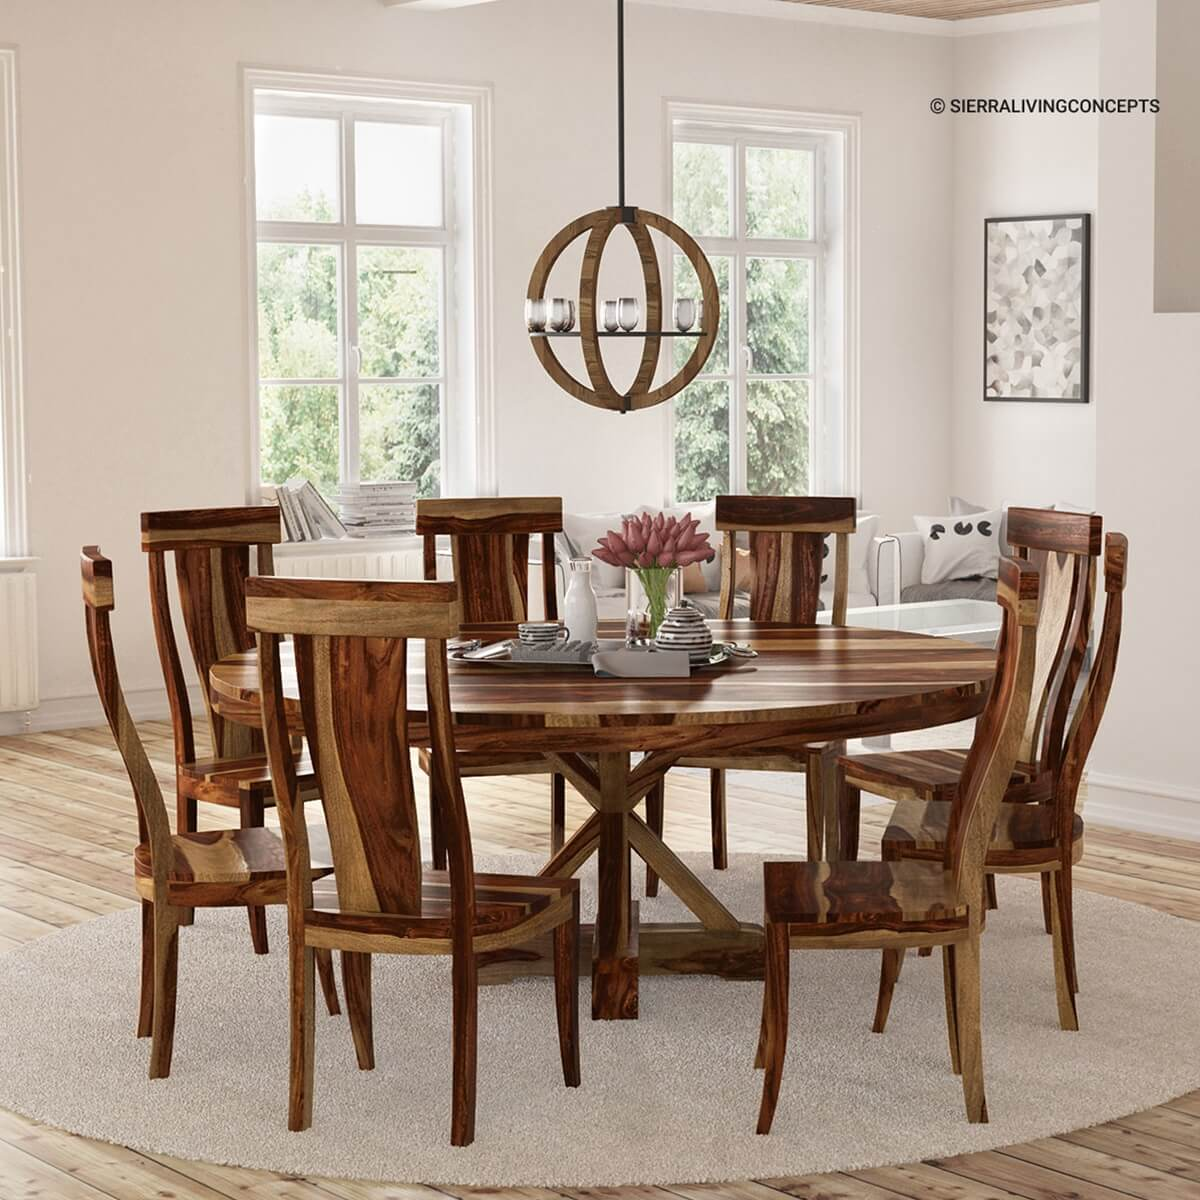 Dining Table 8 Chairs Bedford X Pedestal Rustic 72